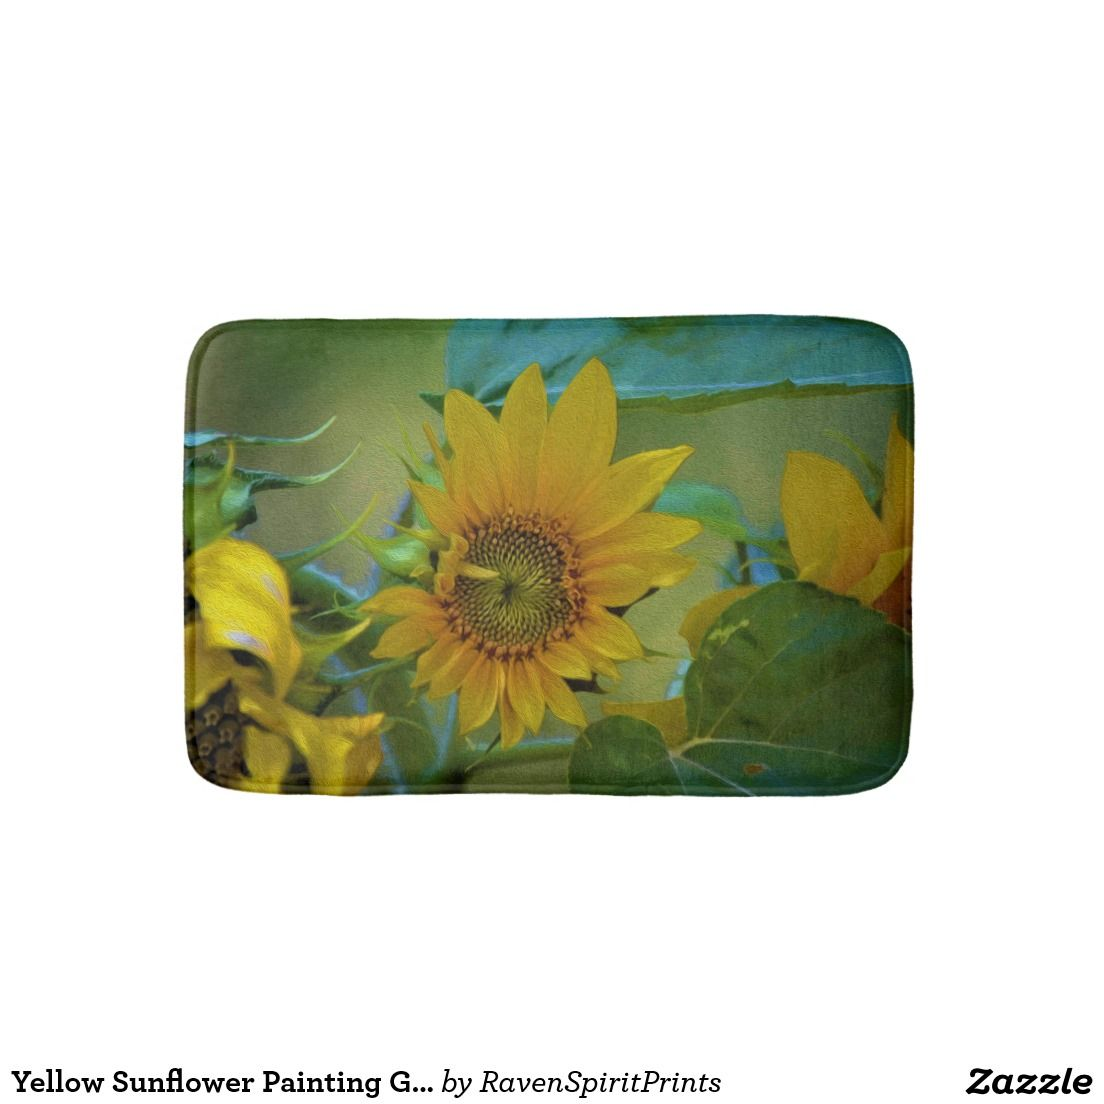 Yellow sunflower painting garden floral art bathroom mat products